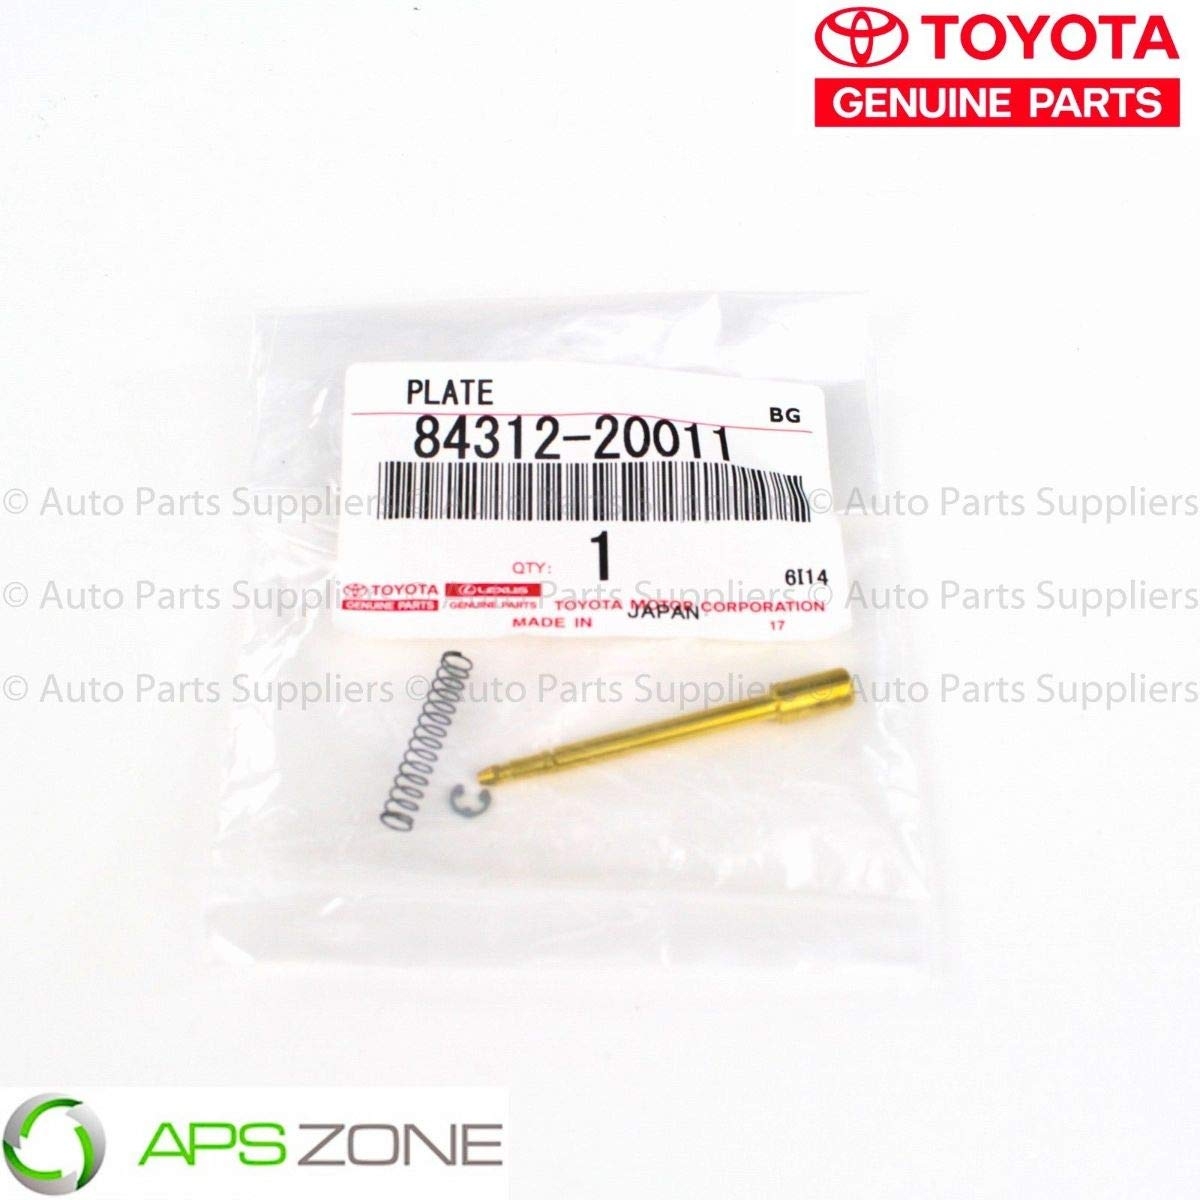 Amazon.com: Genuine Toyota Horn Contact Plate Oem 84312-20011: Automotive